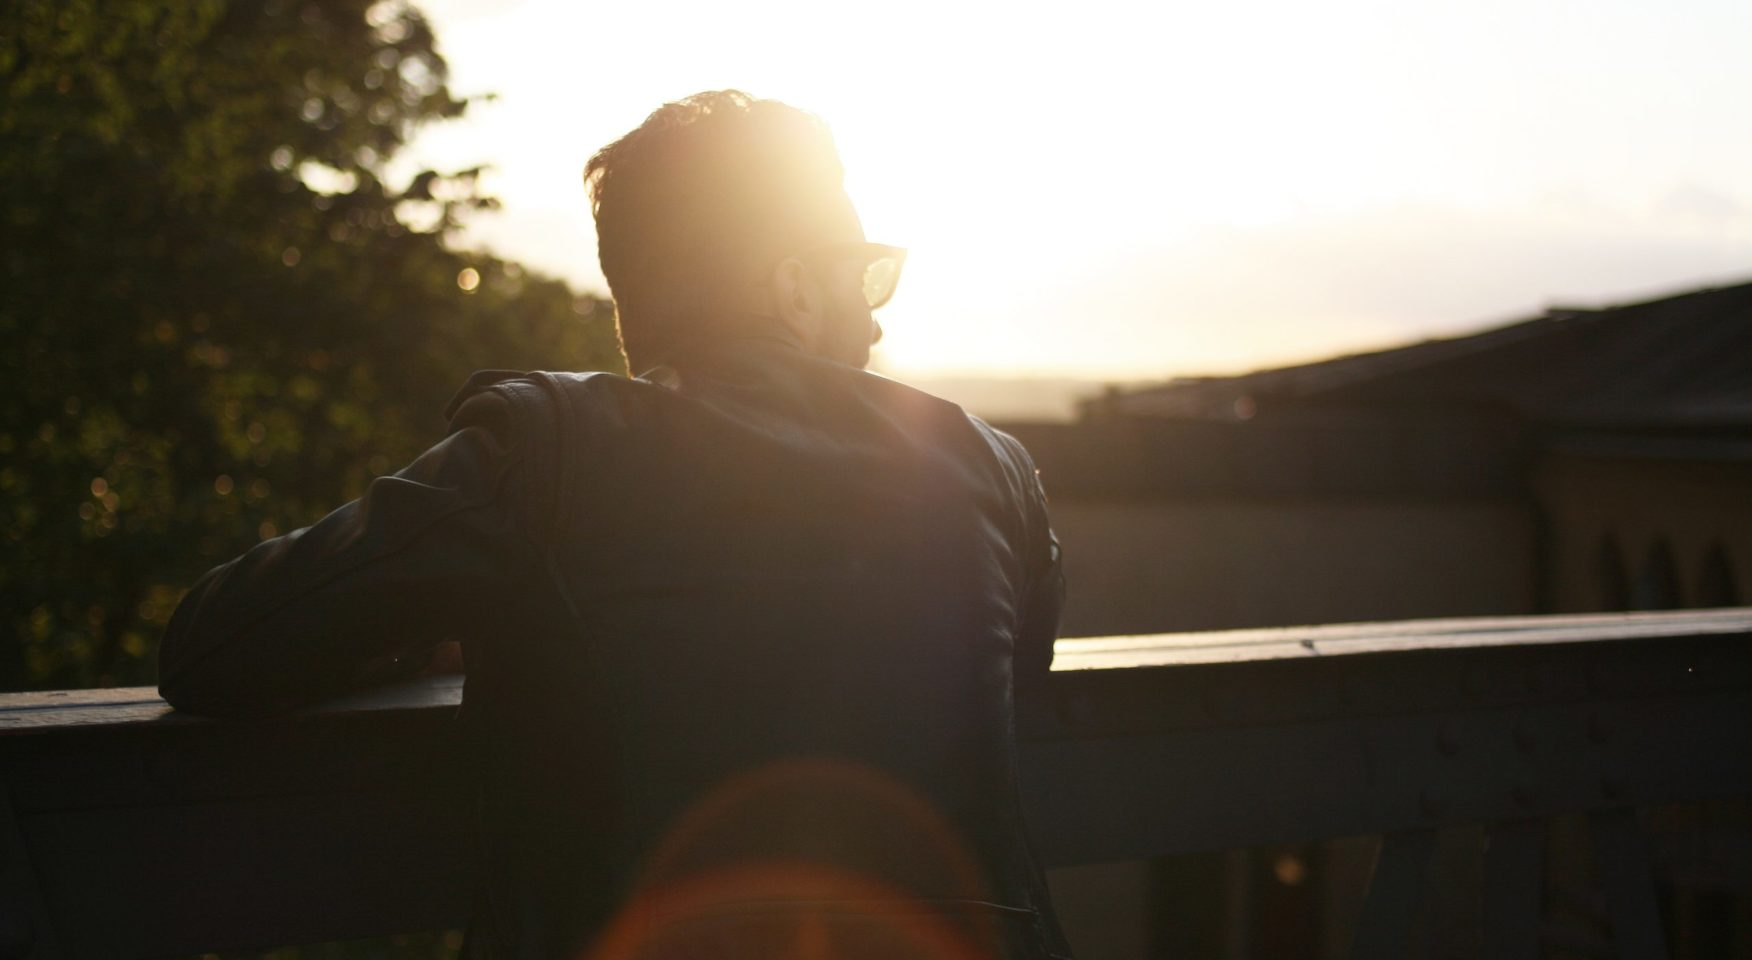 Man with sunglasses and black leather jacket staring at bright sun